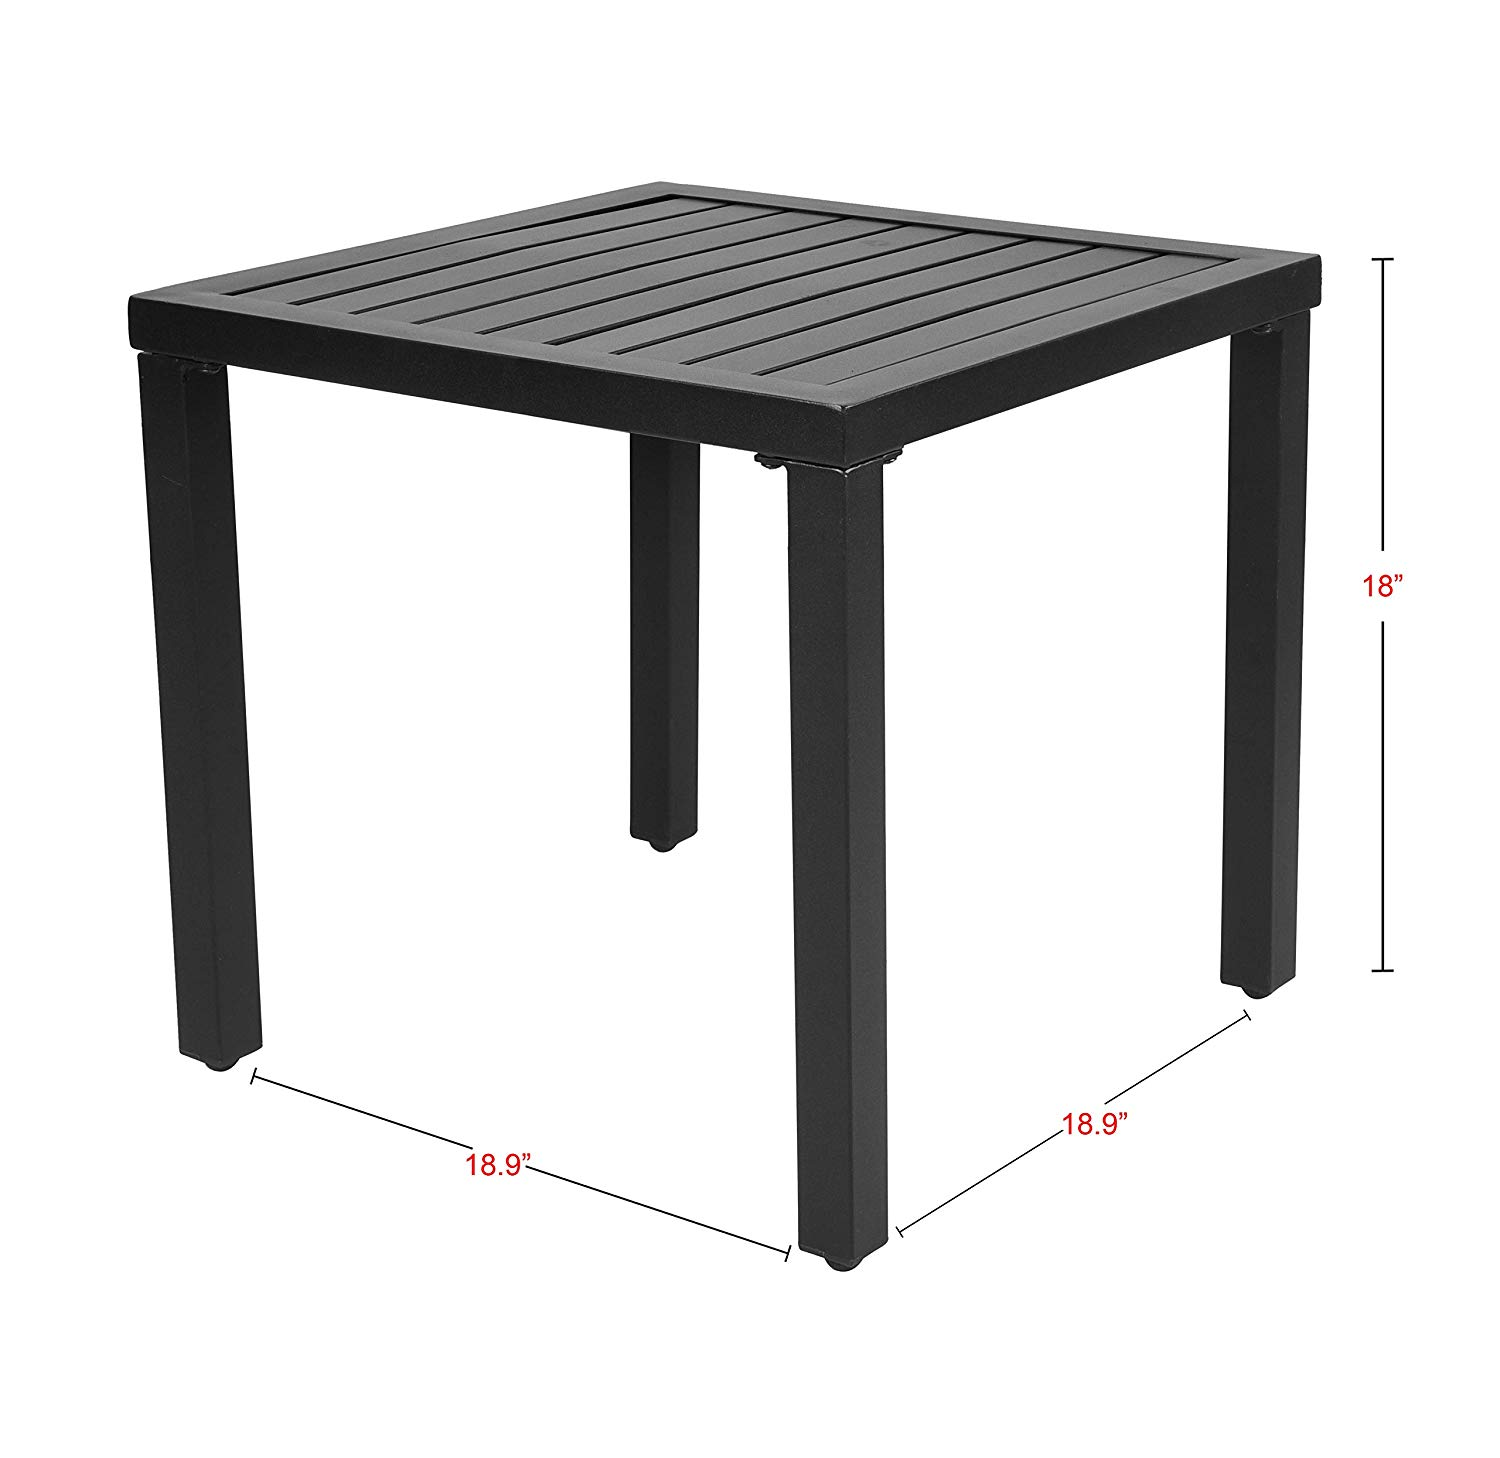 emerit outdoor metal square patio bistro side end table furniture tables black garden living room lights craftsman style pull out coffee rustic all glass round dining very